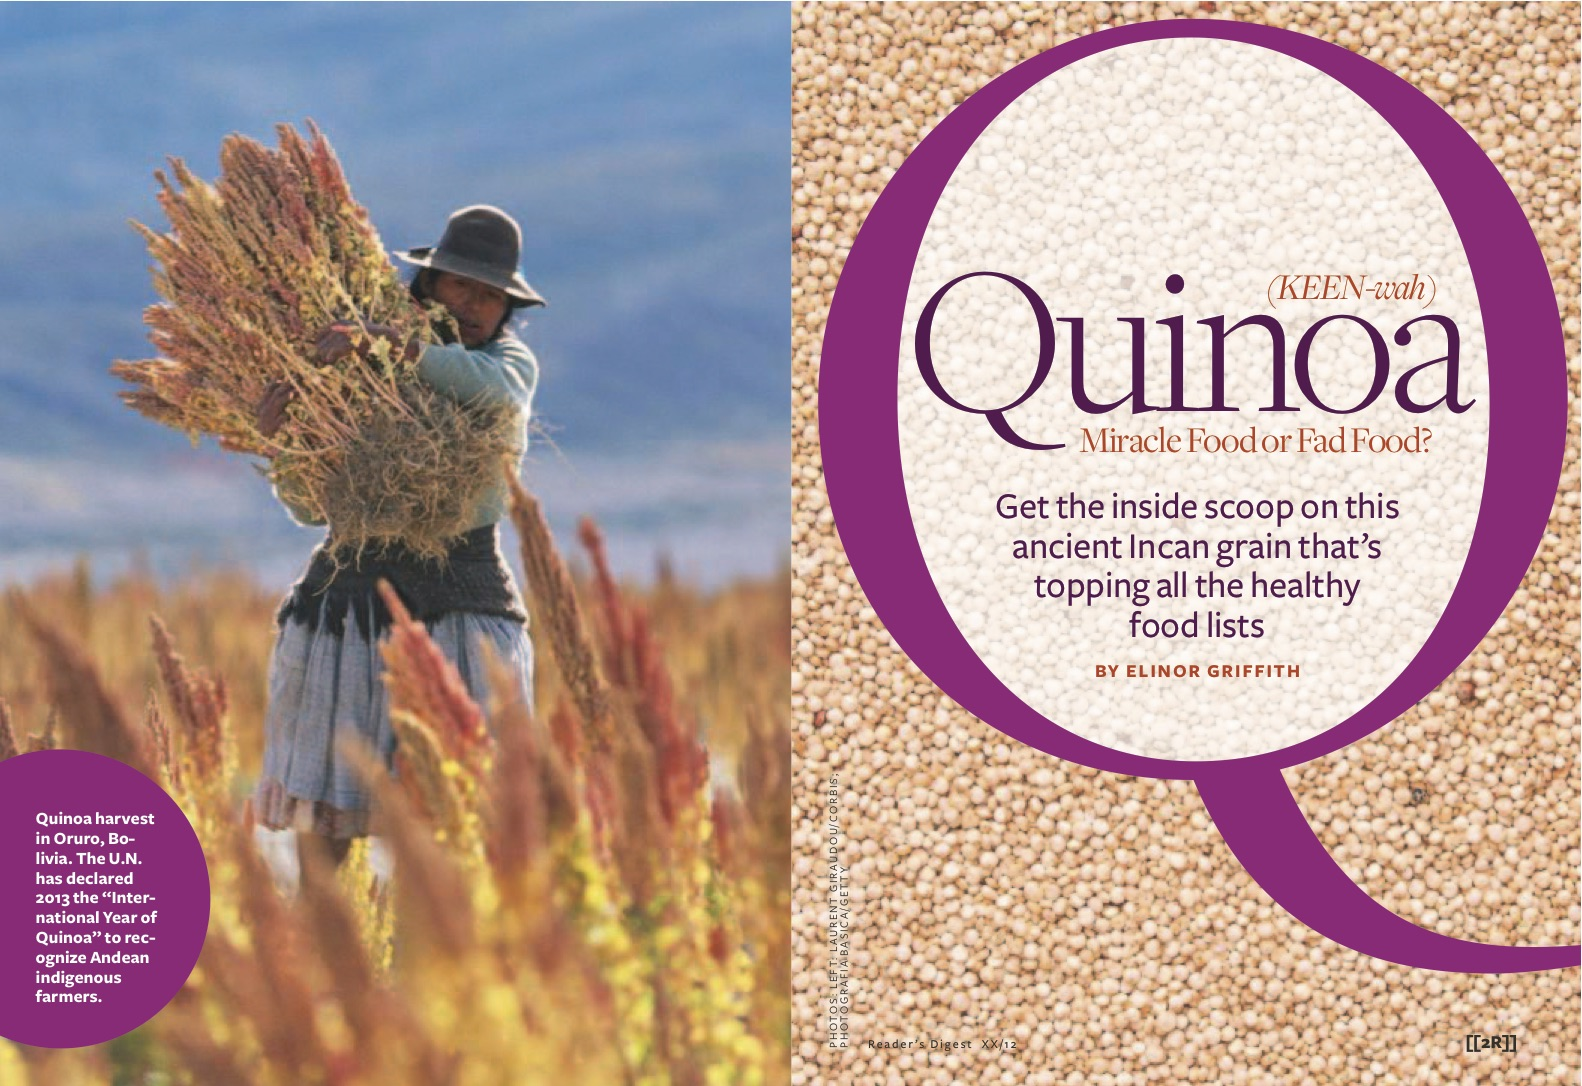 Reader's Digest ran Elinor's article on quinoa in Europe, Russia and elsewhere